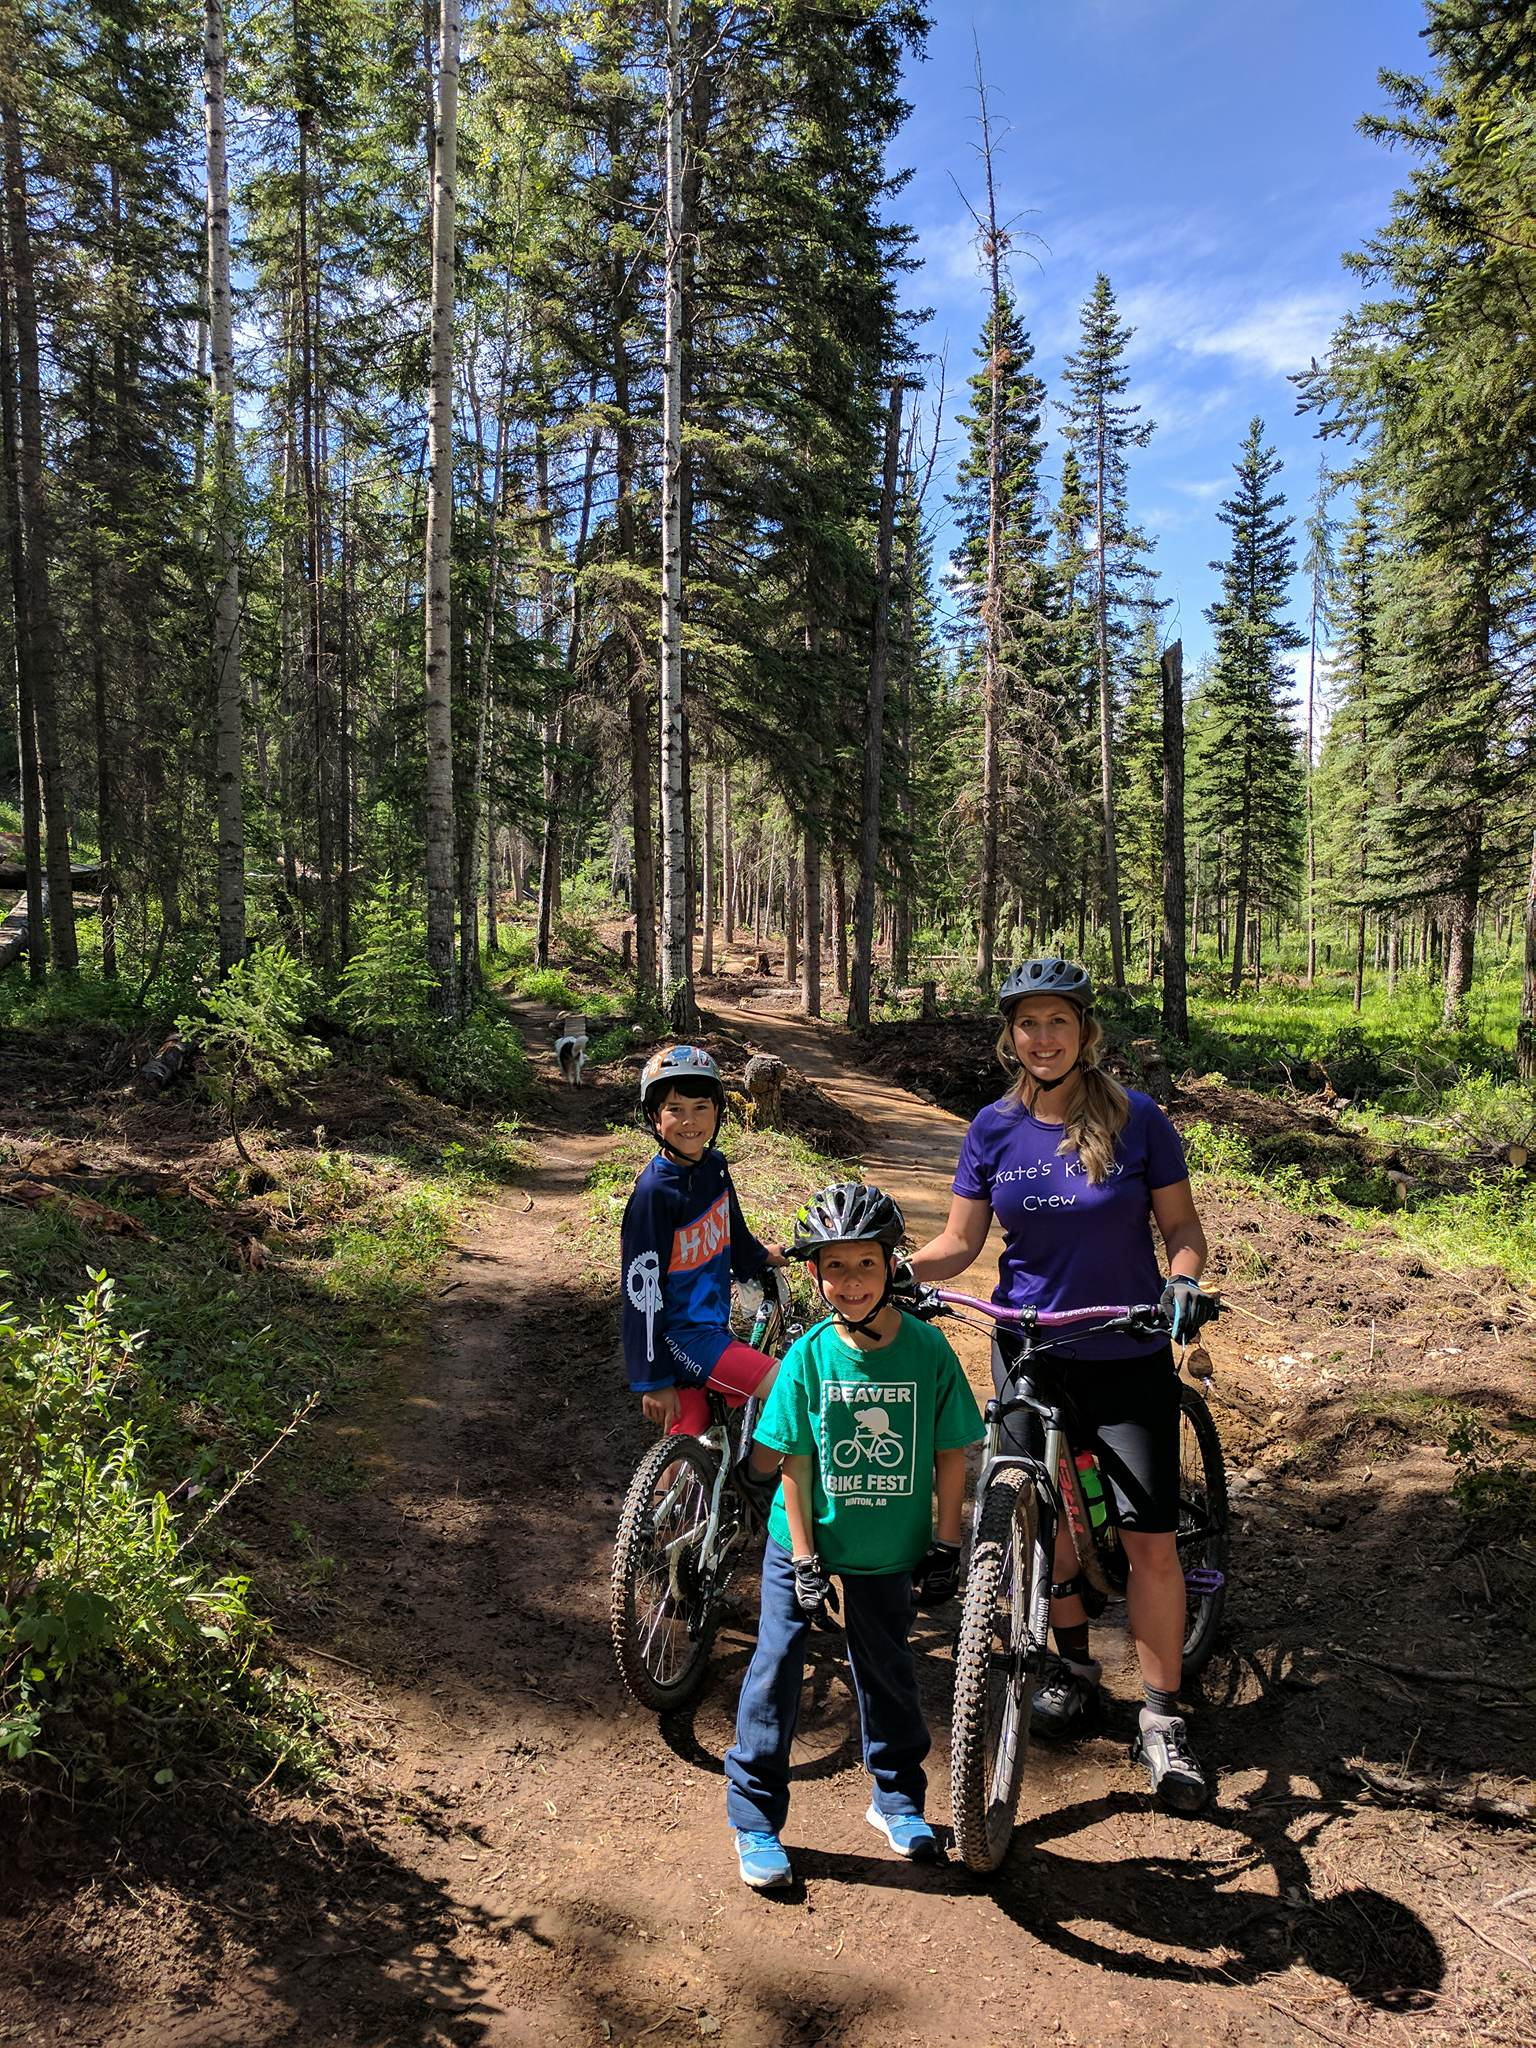 A new trail well suited for riders of all abilities!